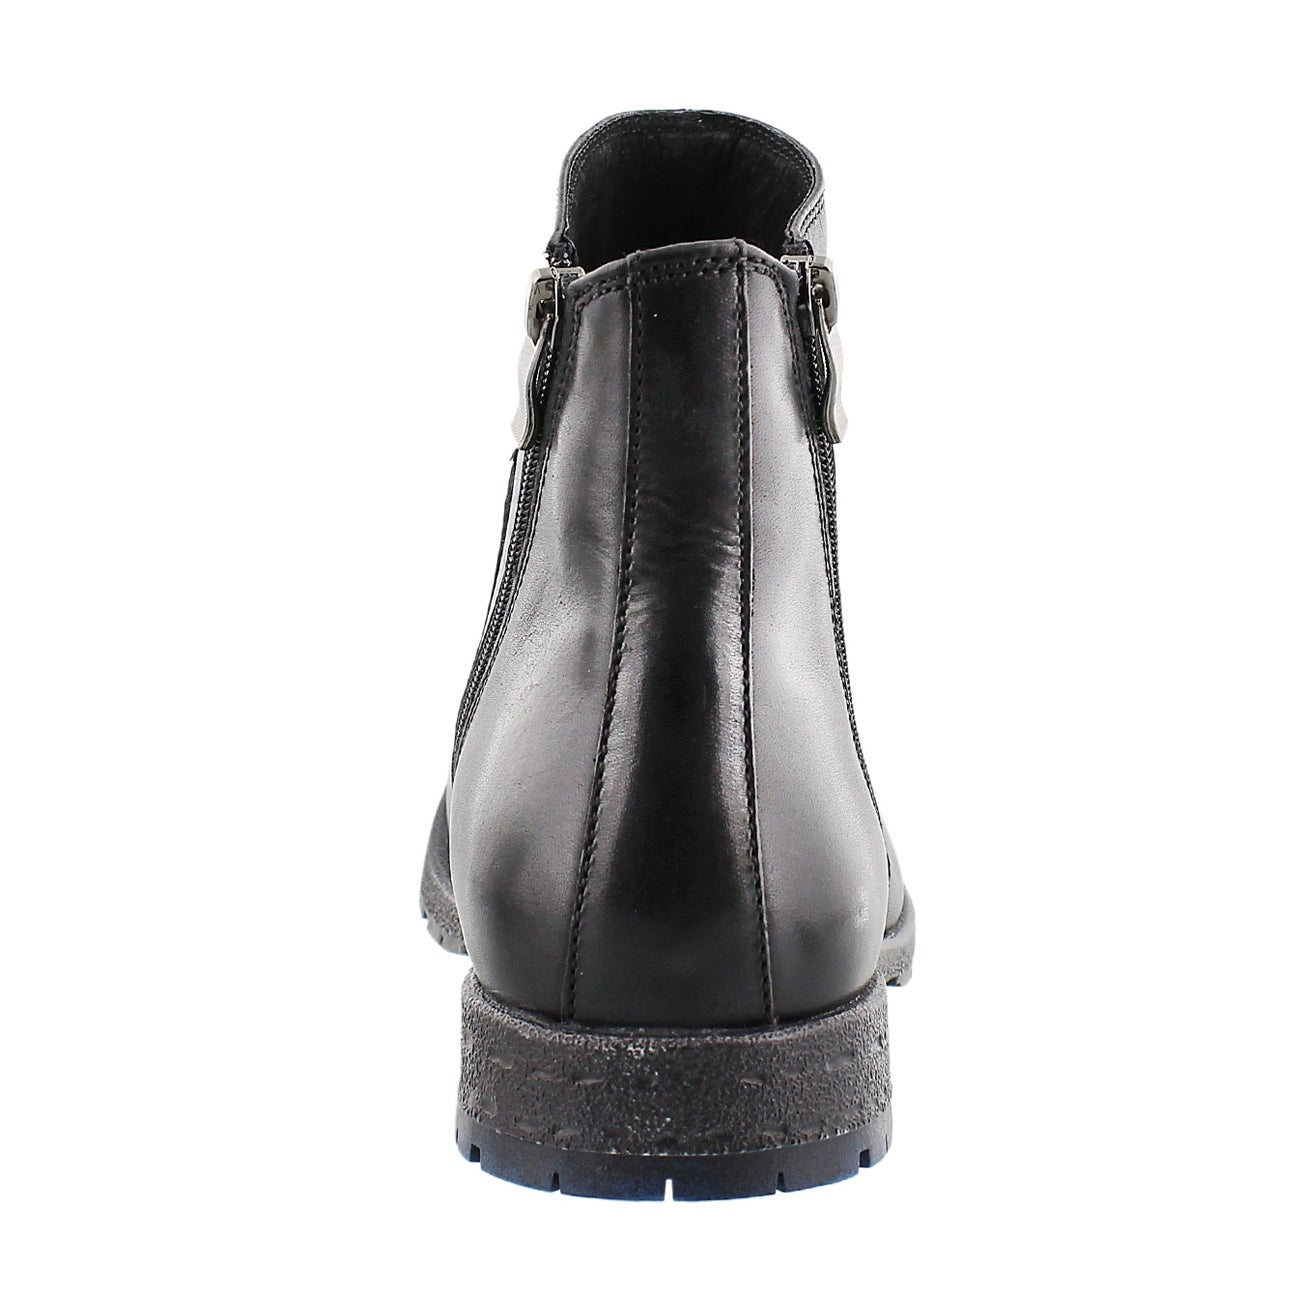 Mns Cesar black lthr casual ankle boot